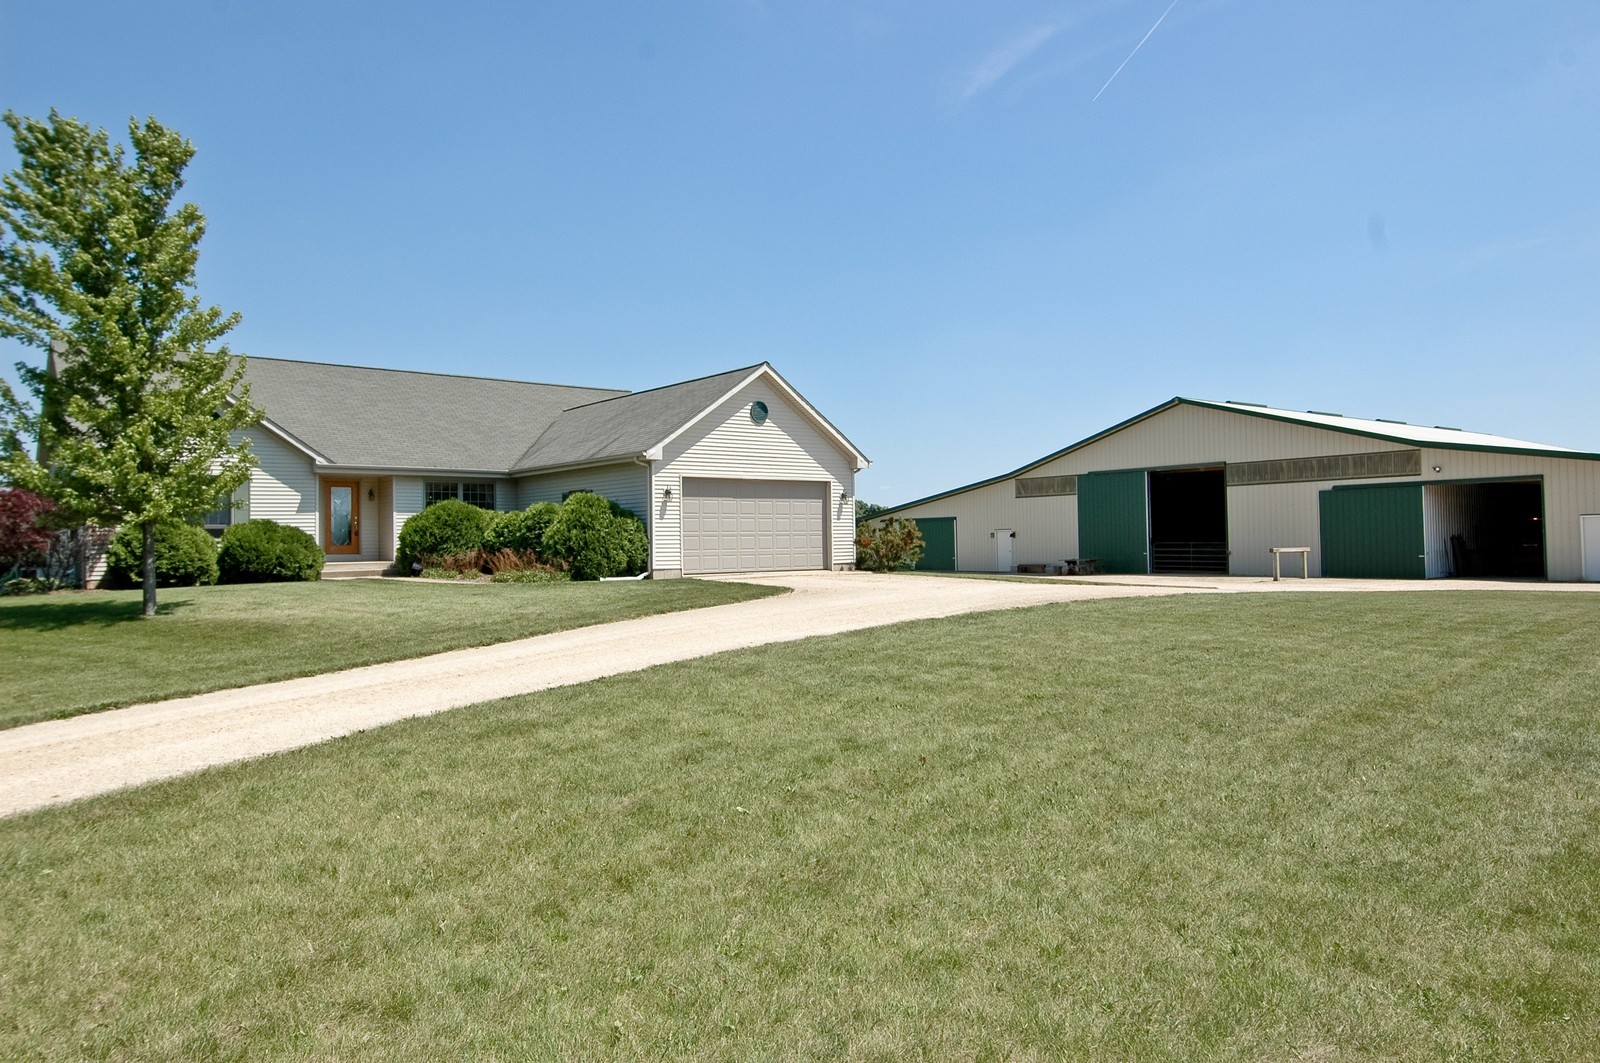 Real Estate Photography - 11785 Coon Trail, Harvard, IL, 60033 - Front View